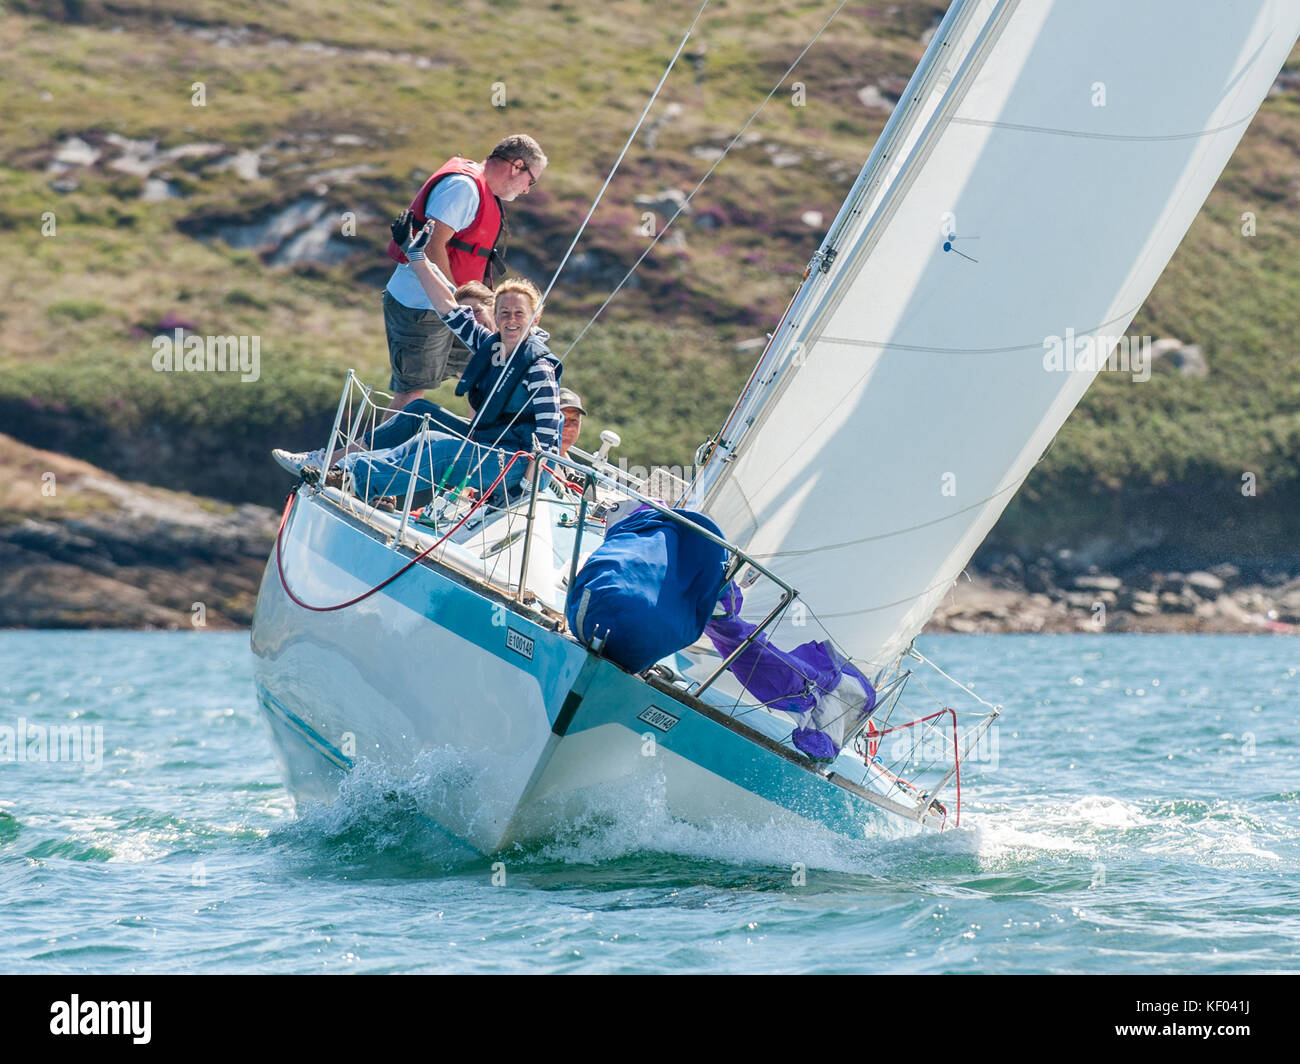 Sailing yacht 'Witchcraft' racing during the 2017 Schull Calves Week, Schull, West Cork, Ireland. Stock Photo